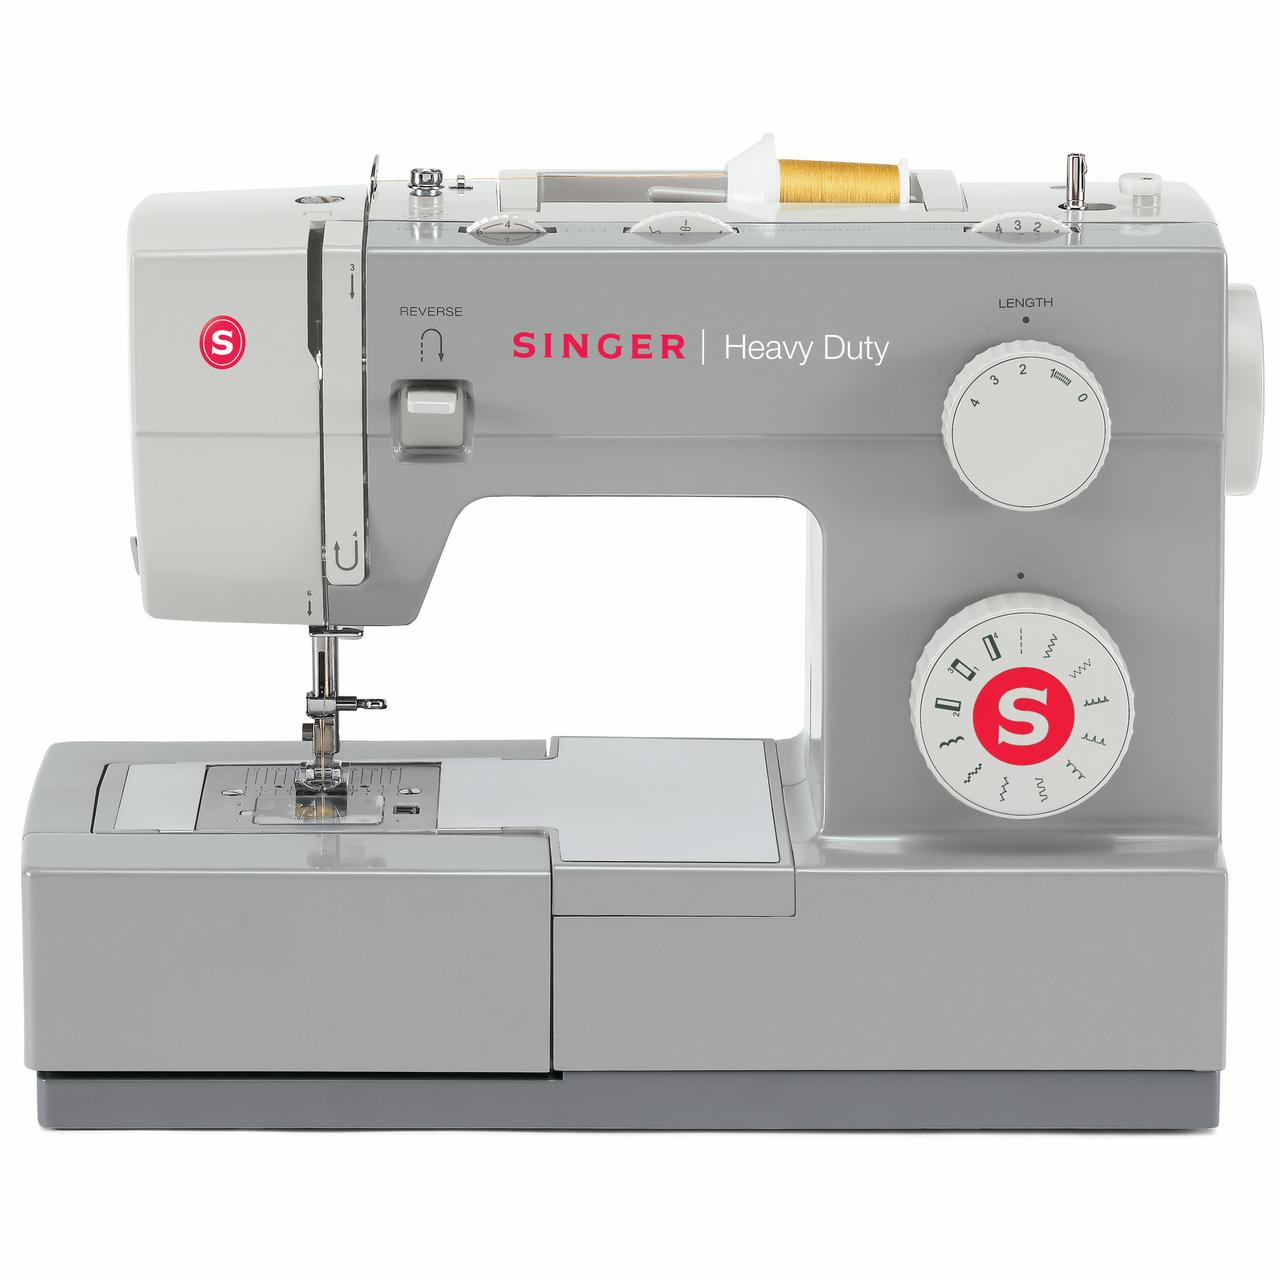 Singer Heavy Duty 4411 Sewing Machine with 11 Built-in Stitches, Strong Motor & 4 Step Buttonhole, Perfect for Sewing all Types of Fabrics with Ease